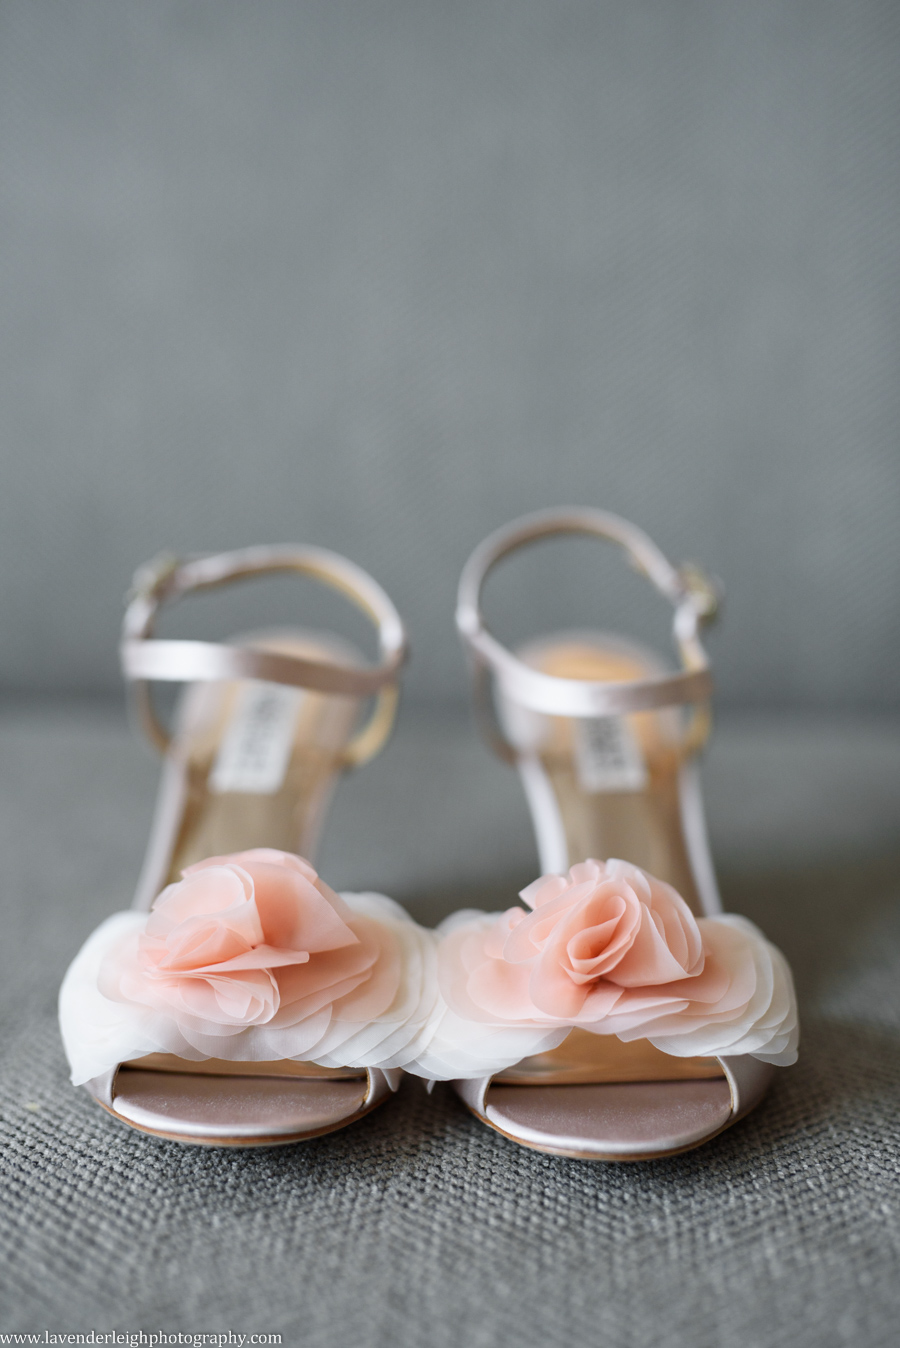 I just about died over these gorgeous Badgley Mischka wedding shoes!